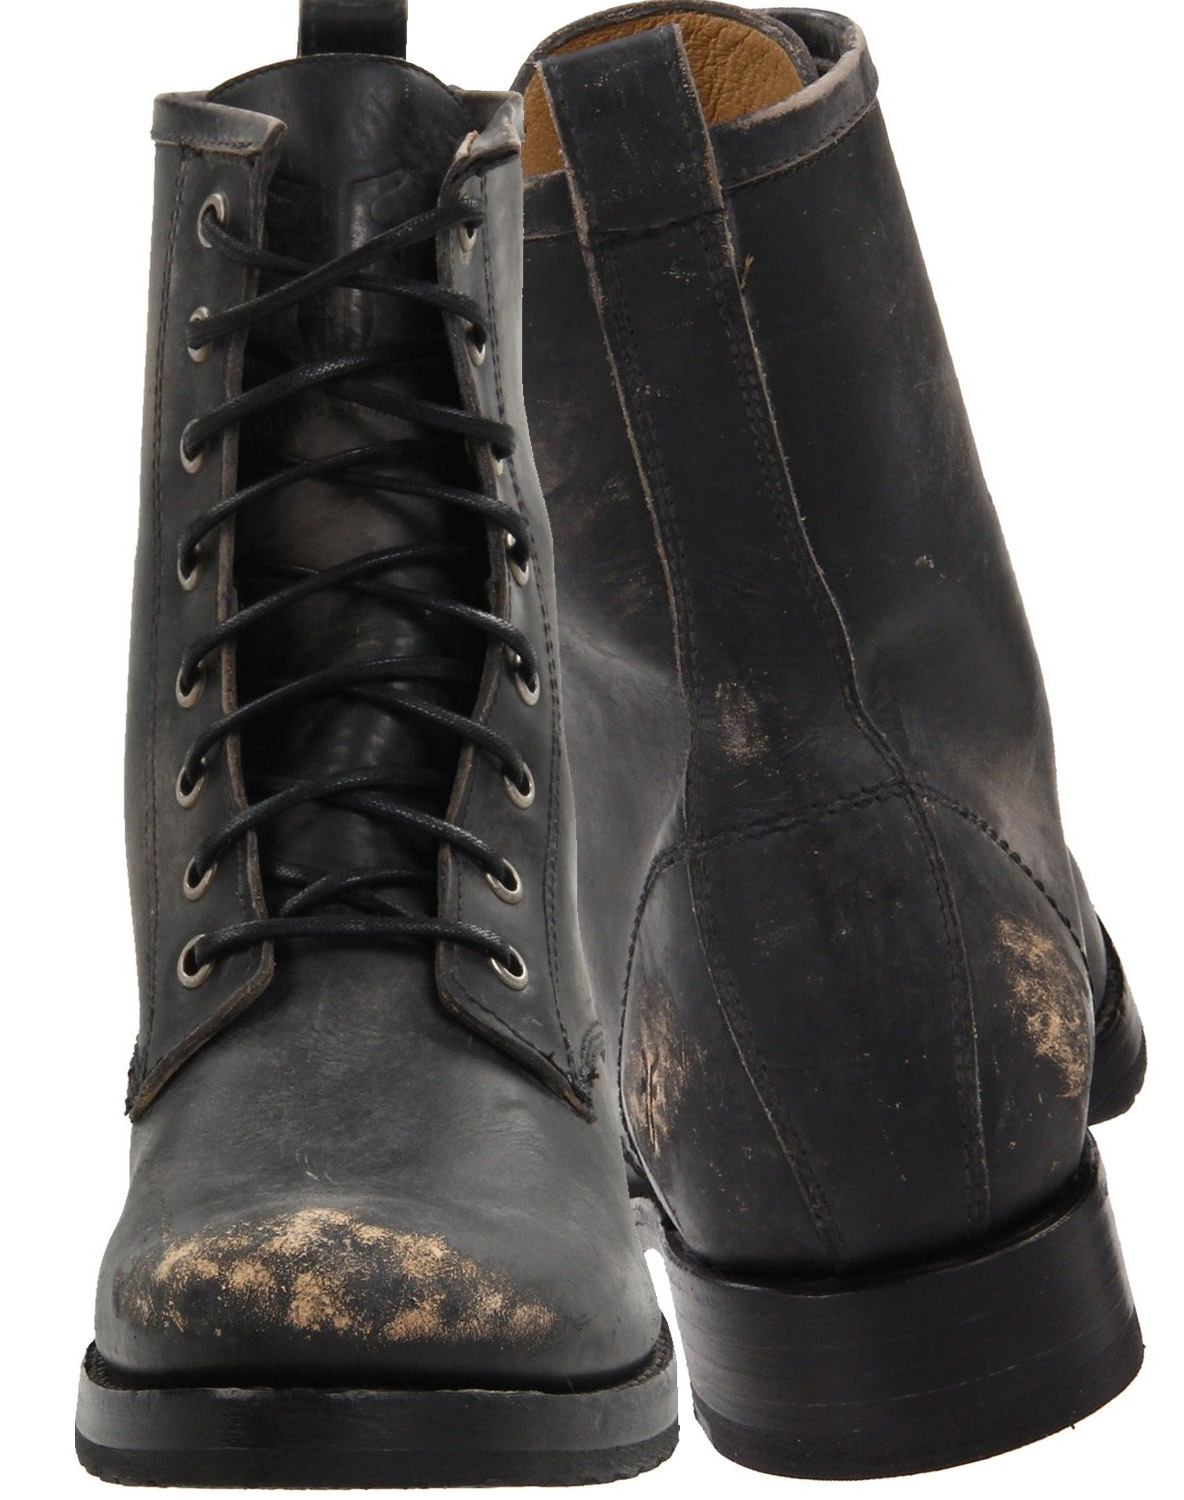 3dc07733c91 FRYE Womens Veronica Combat Boot black stone washed - My Fashion Wants